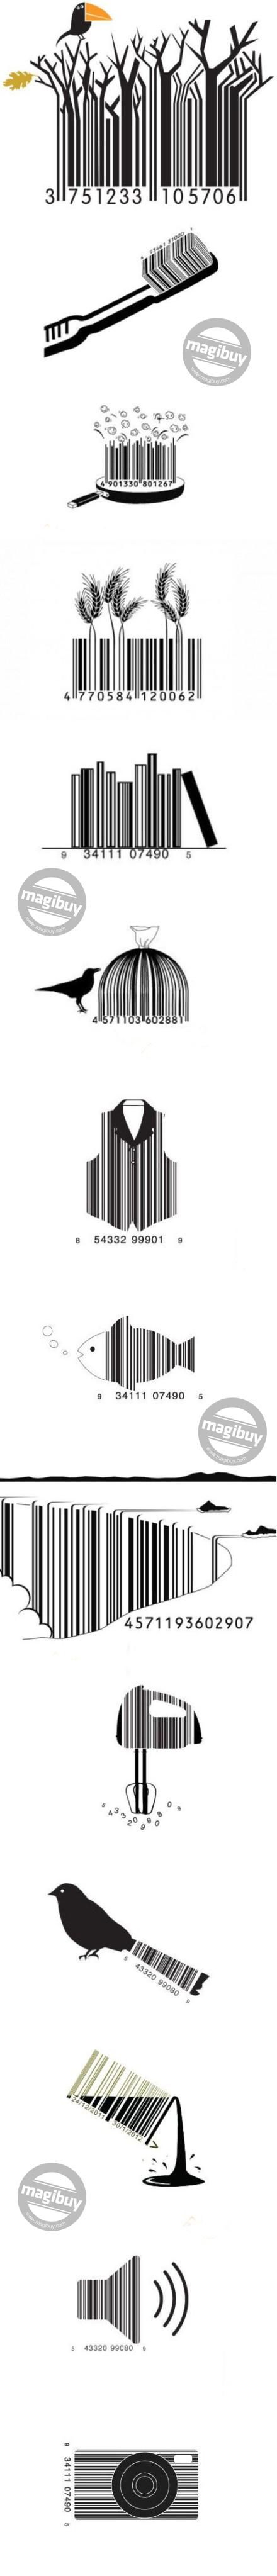 Creative bar code #illustrations! Love. via http://83oranges.com #repin #design Catégorie : remplacer > Allusion